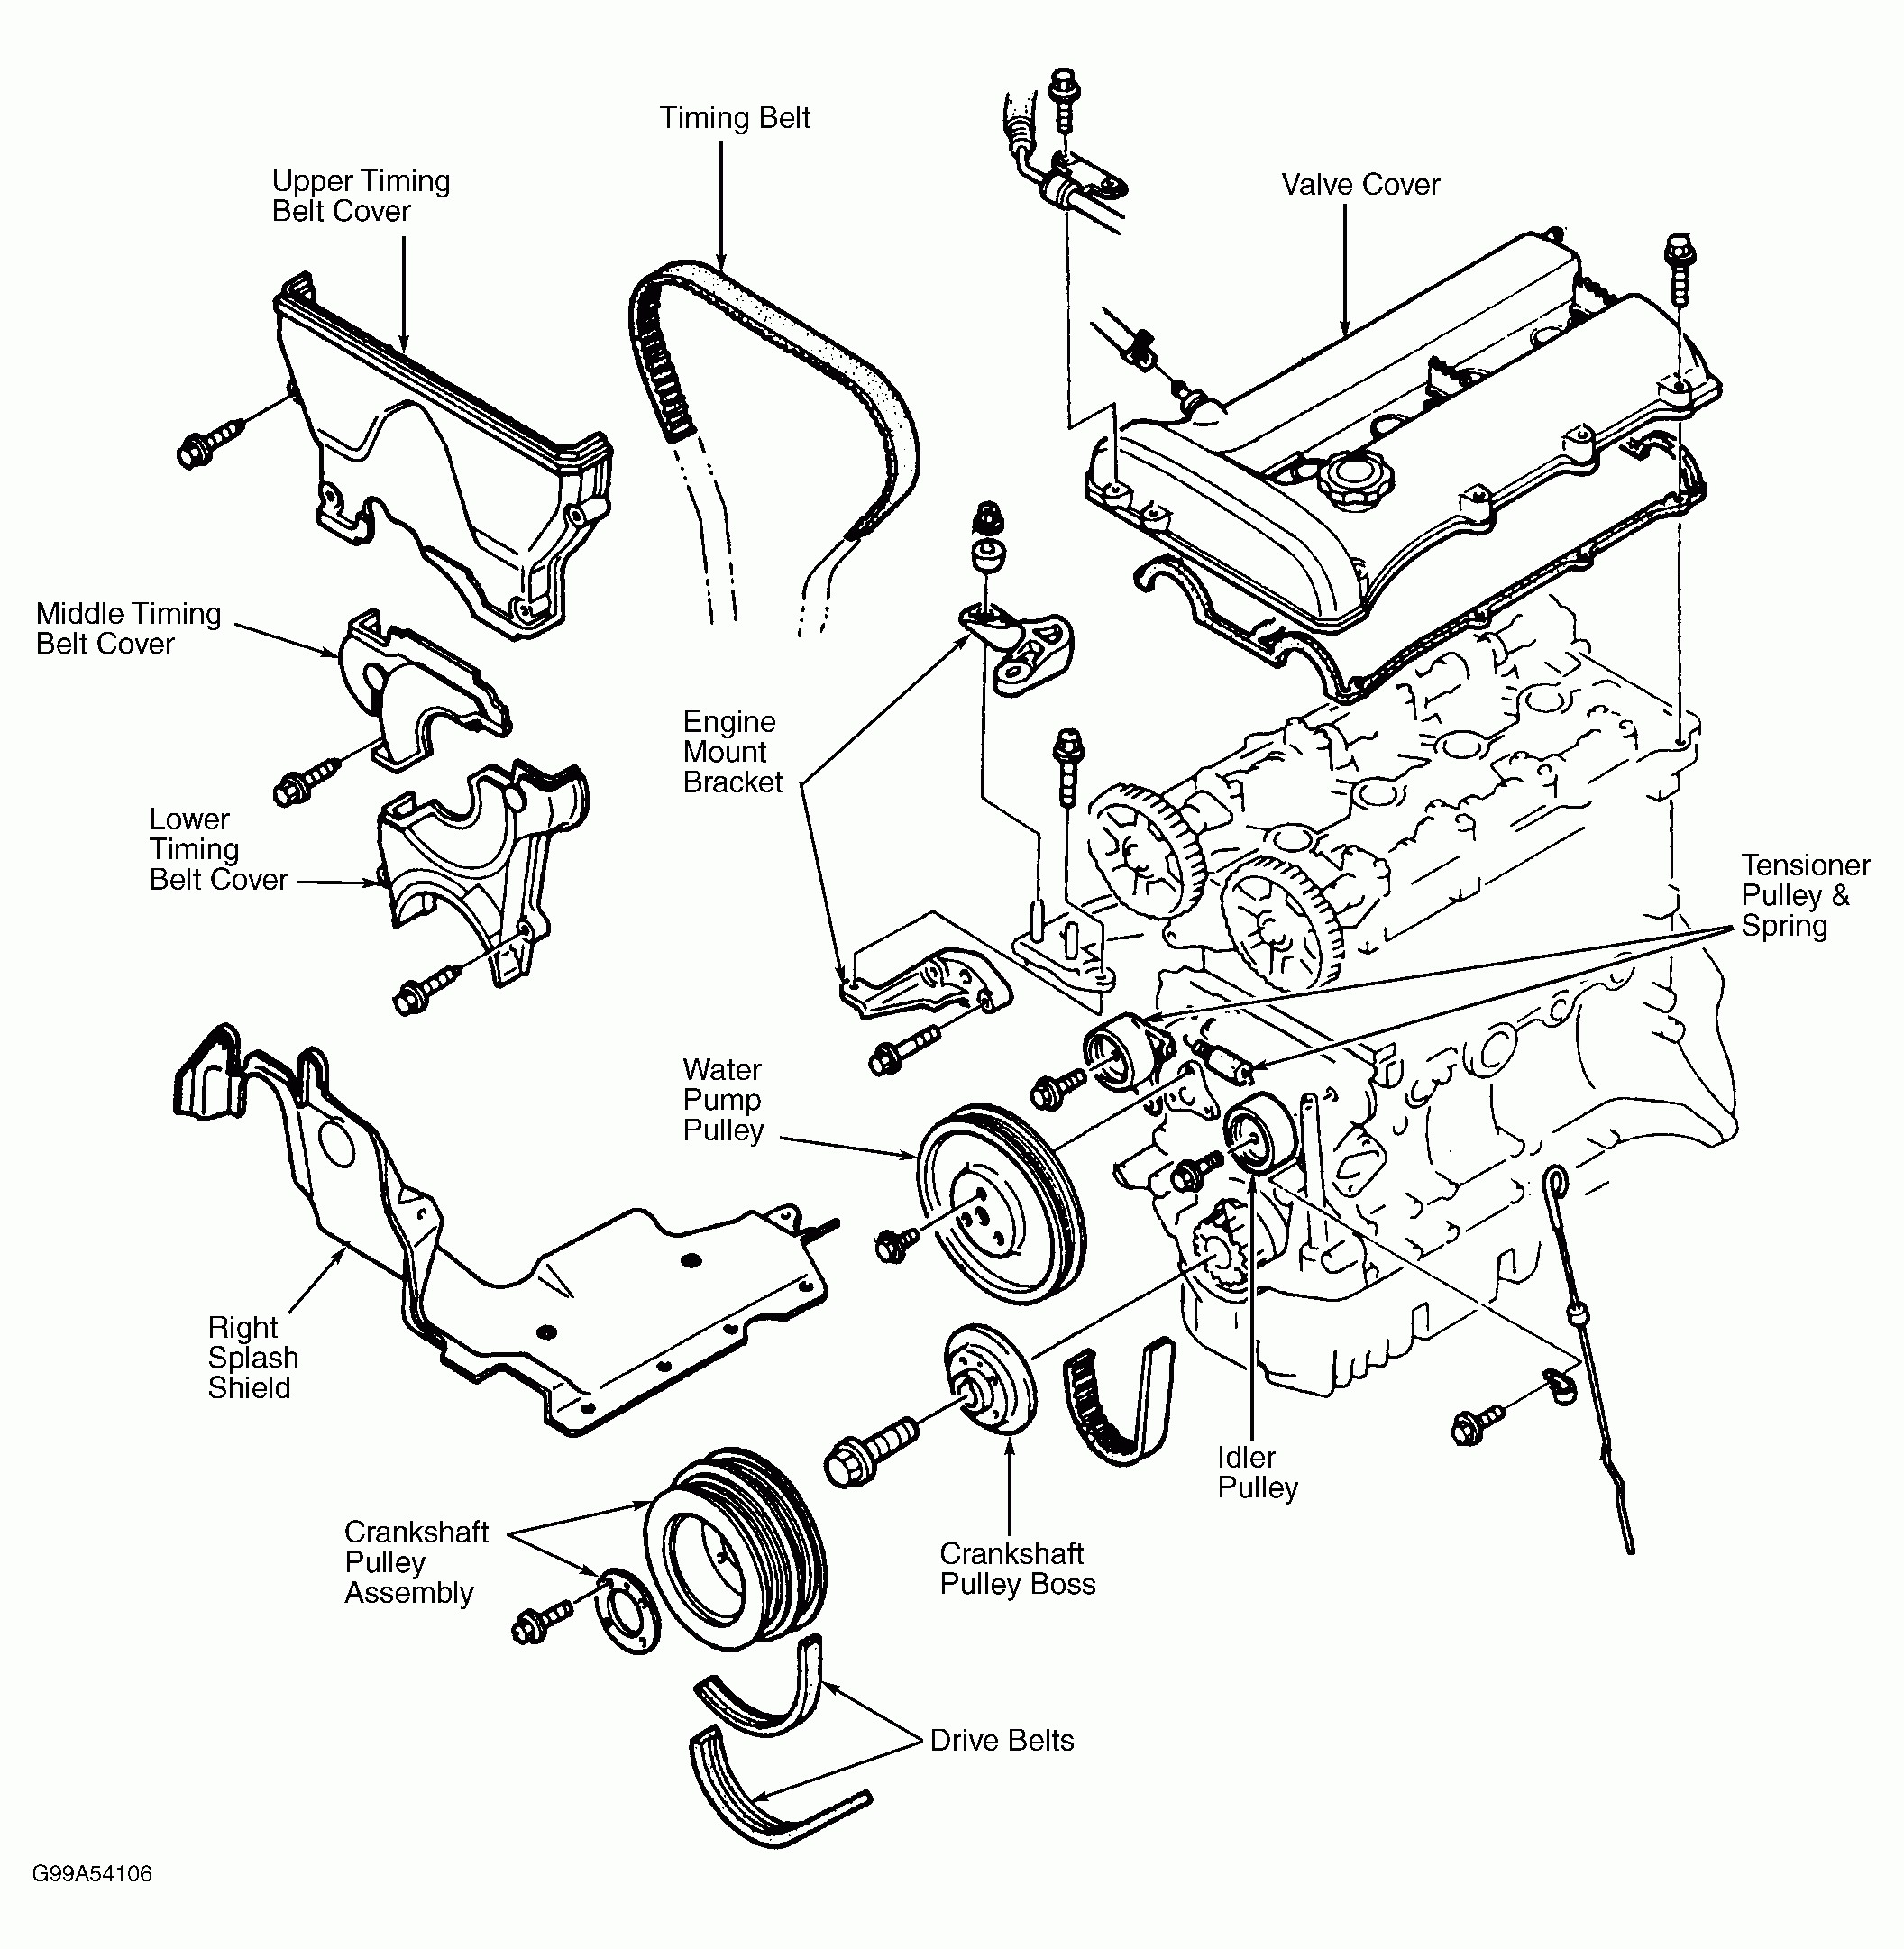 Mazda Protege Engine Internals Diagram Wiring Diagrams 2003 Mpv 1999 Simple 97